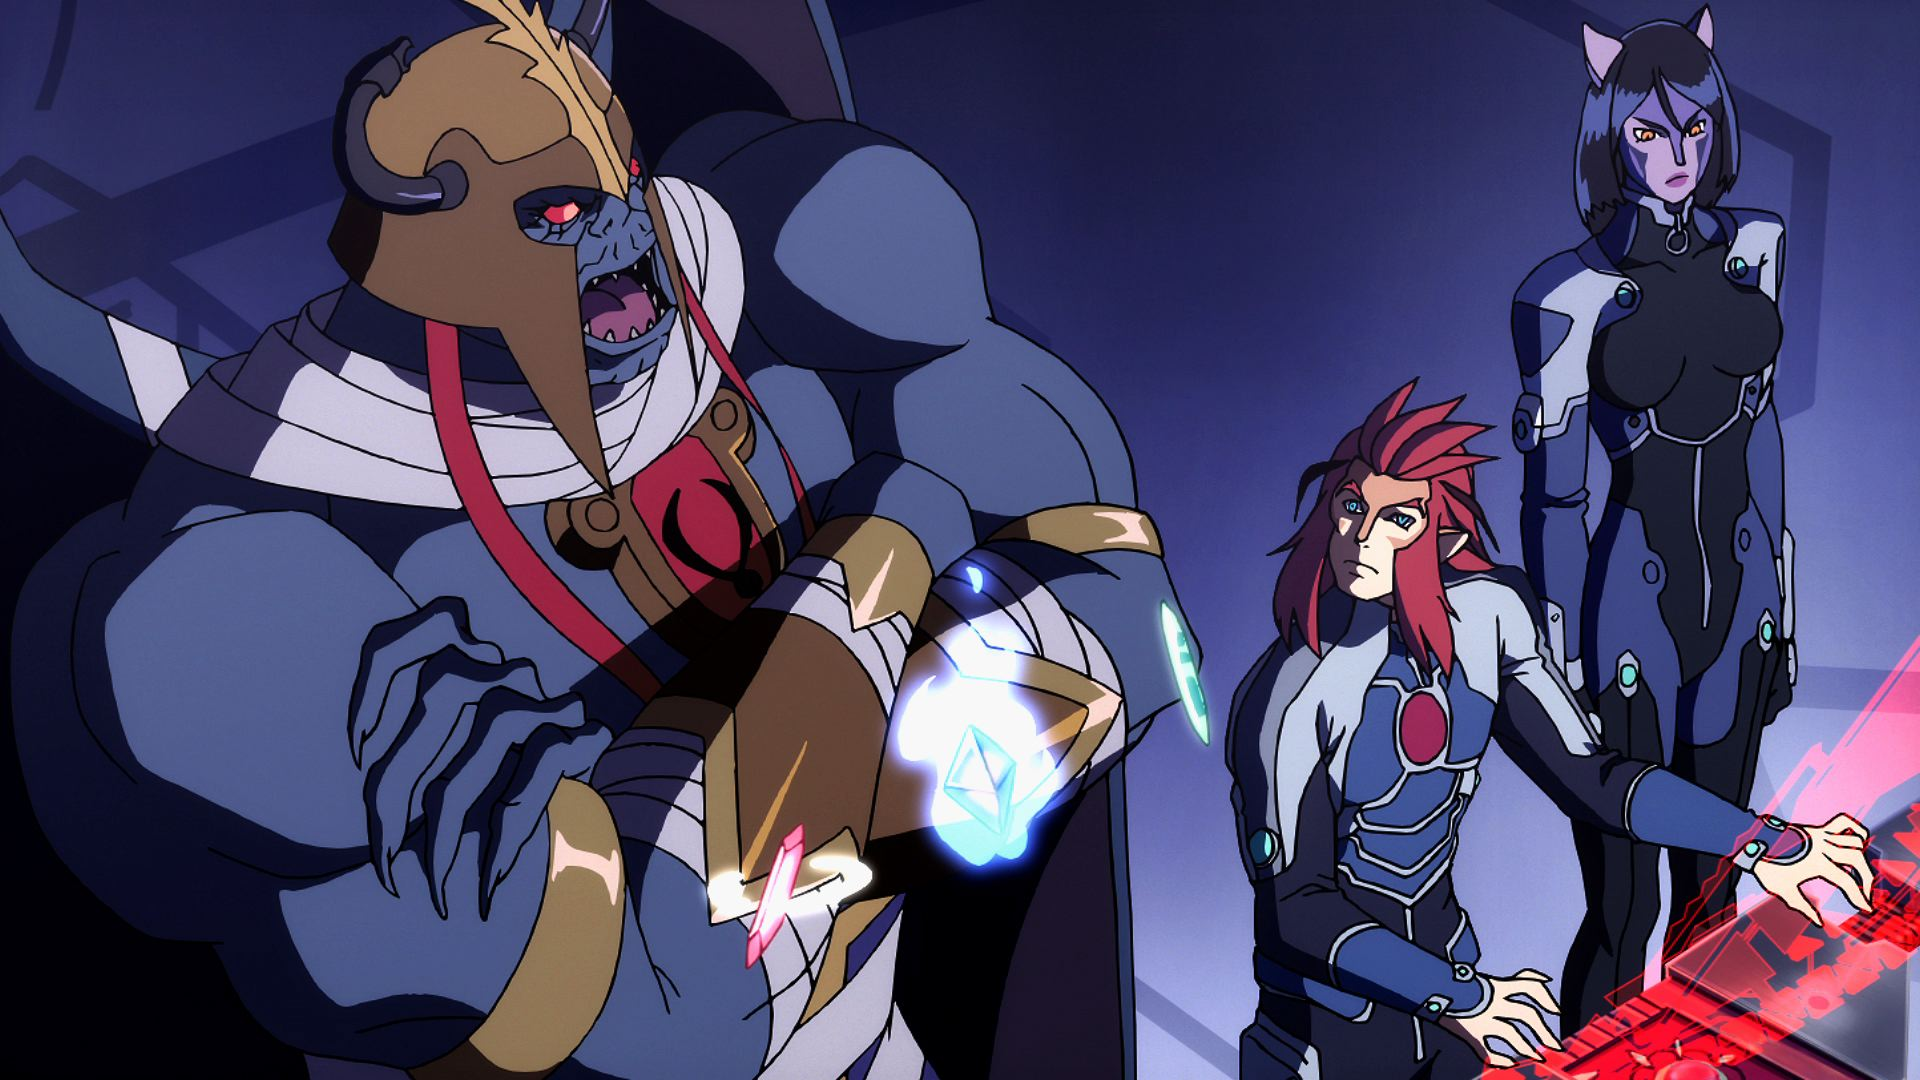 Toy Story 3 Wallpaper Hd Thundercats Episode 21 Birth Of The Blades Preview Images